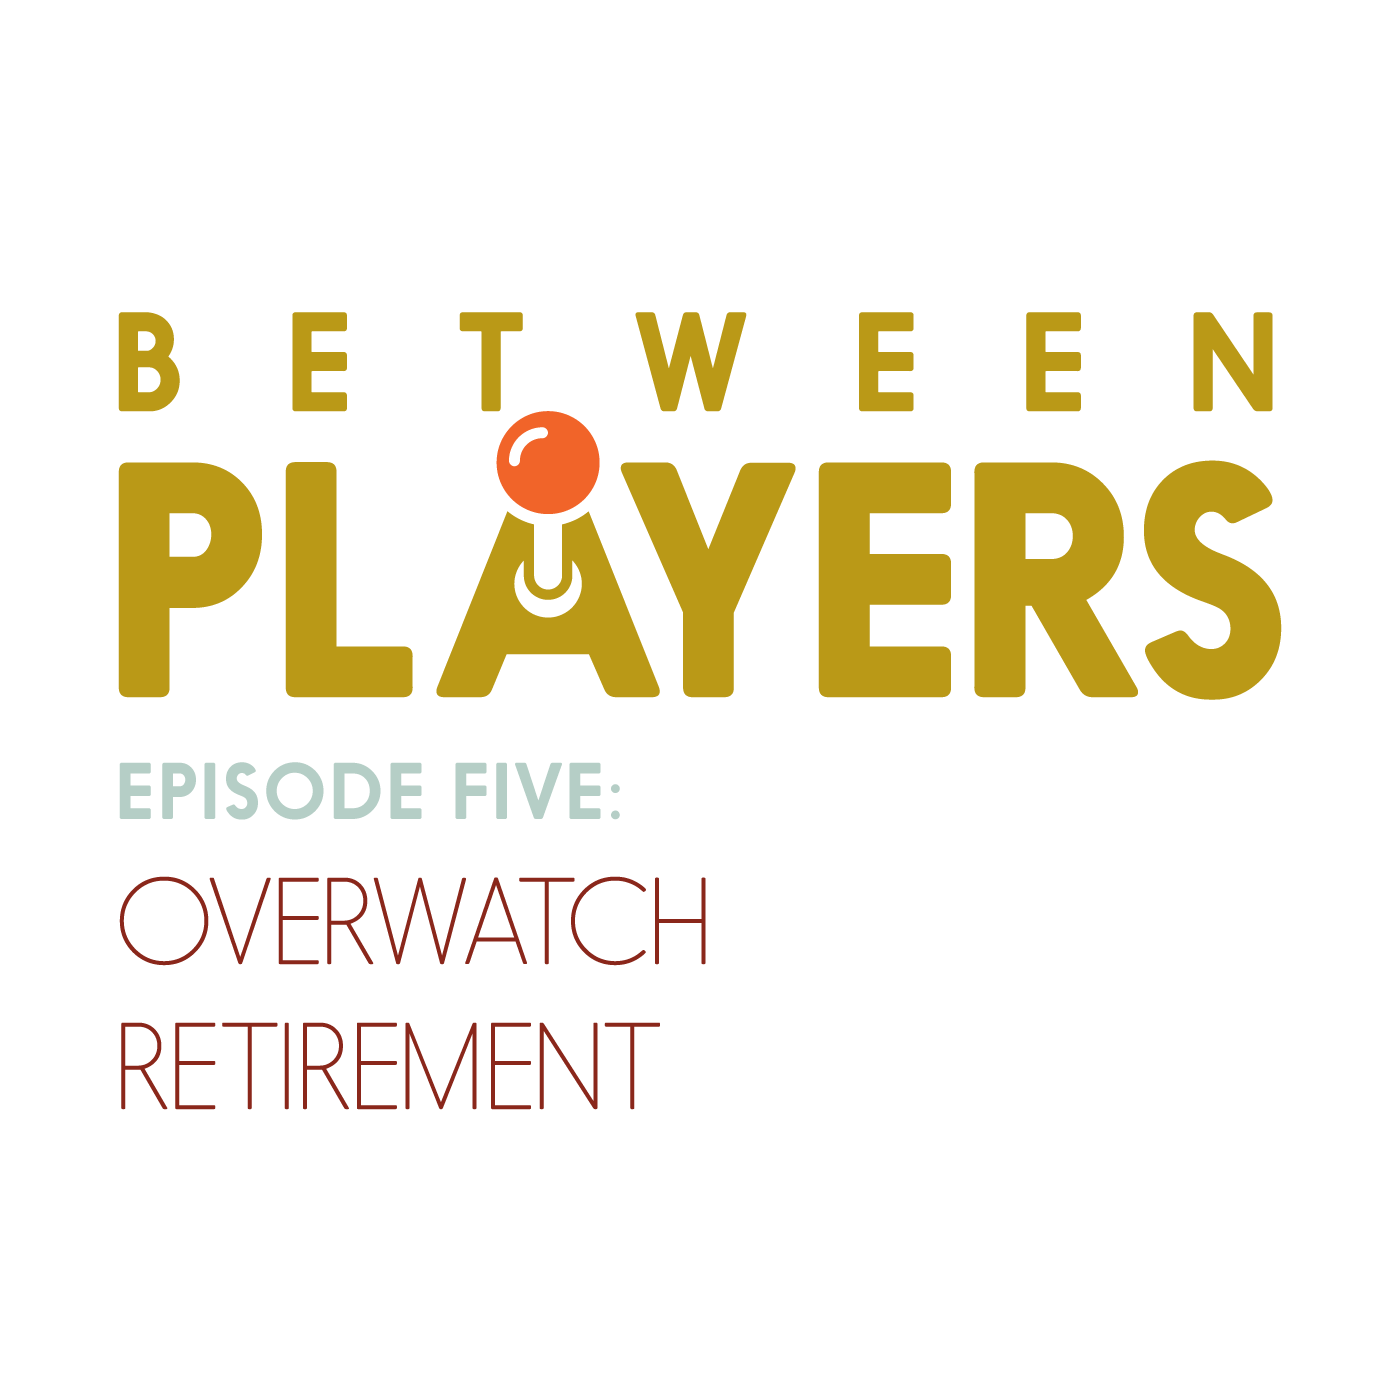 Overwatch retirement text graphic